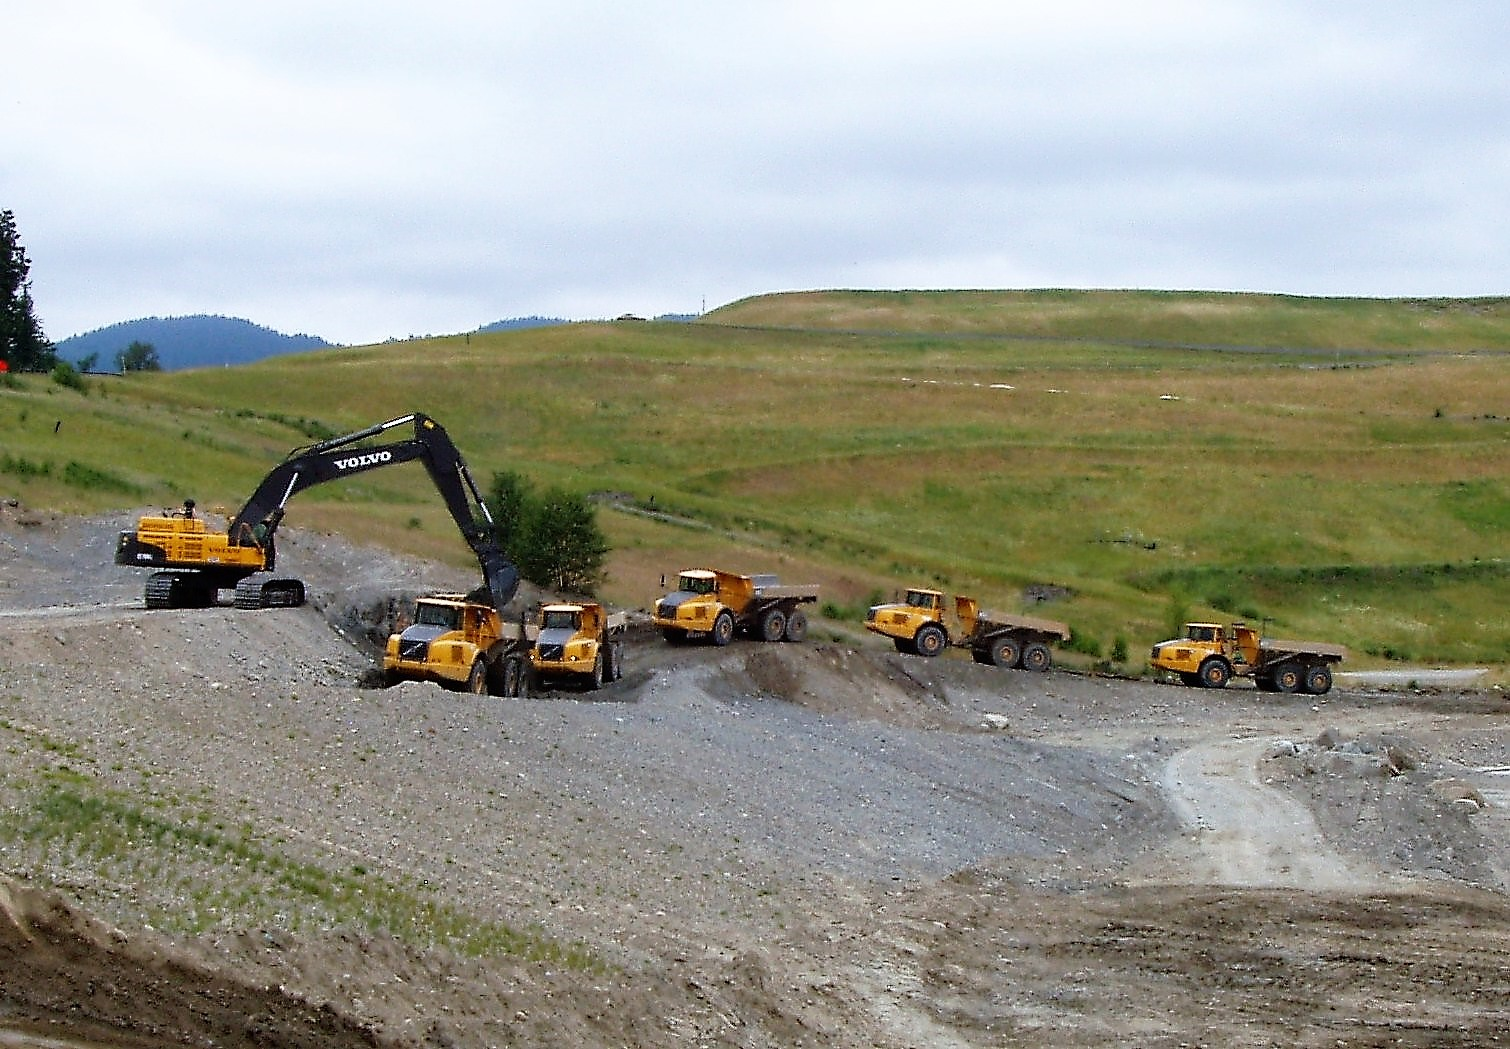 Five Volvo haulers working to reshape a landfill